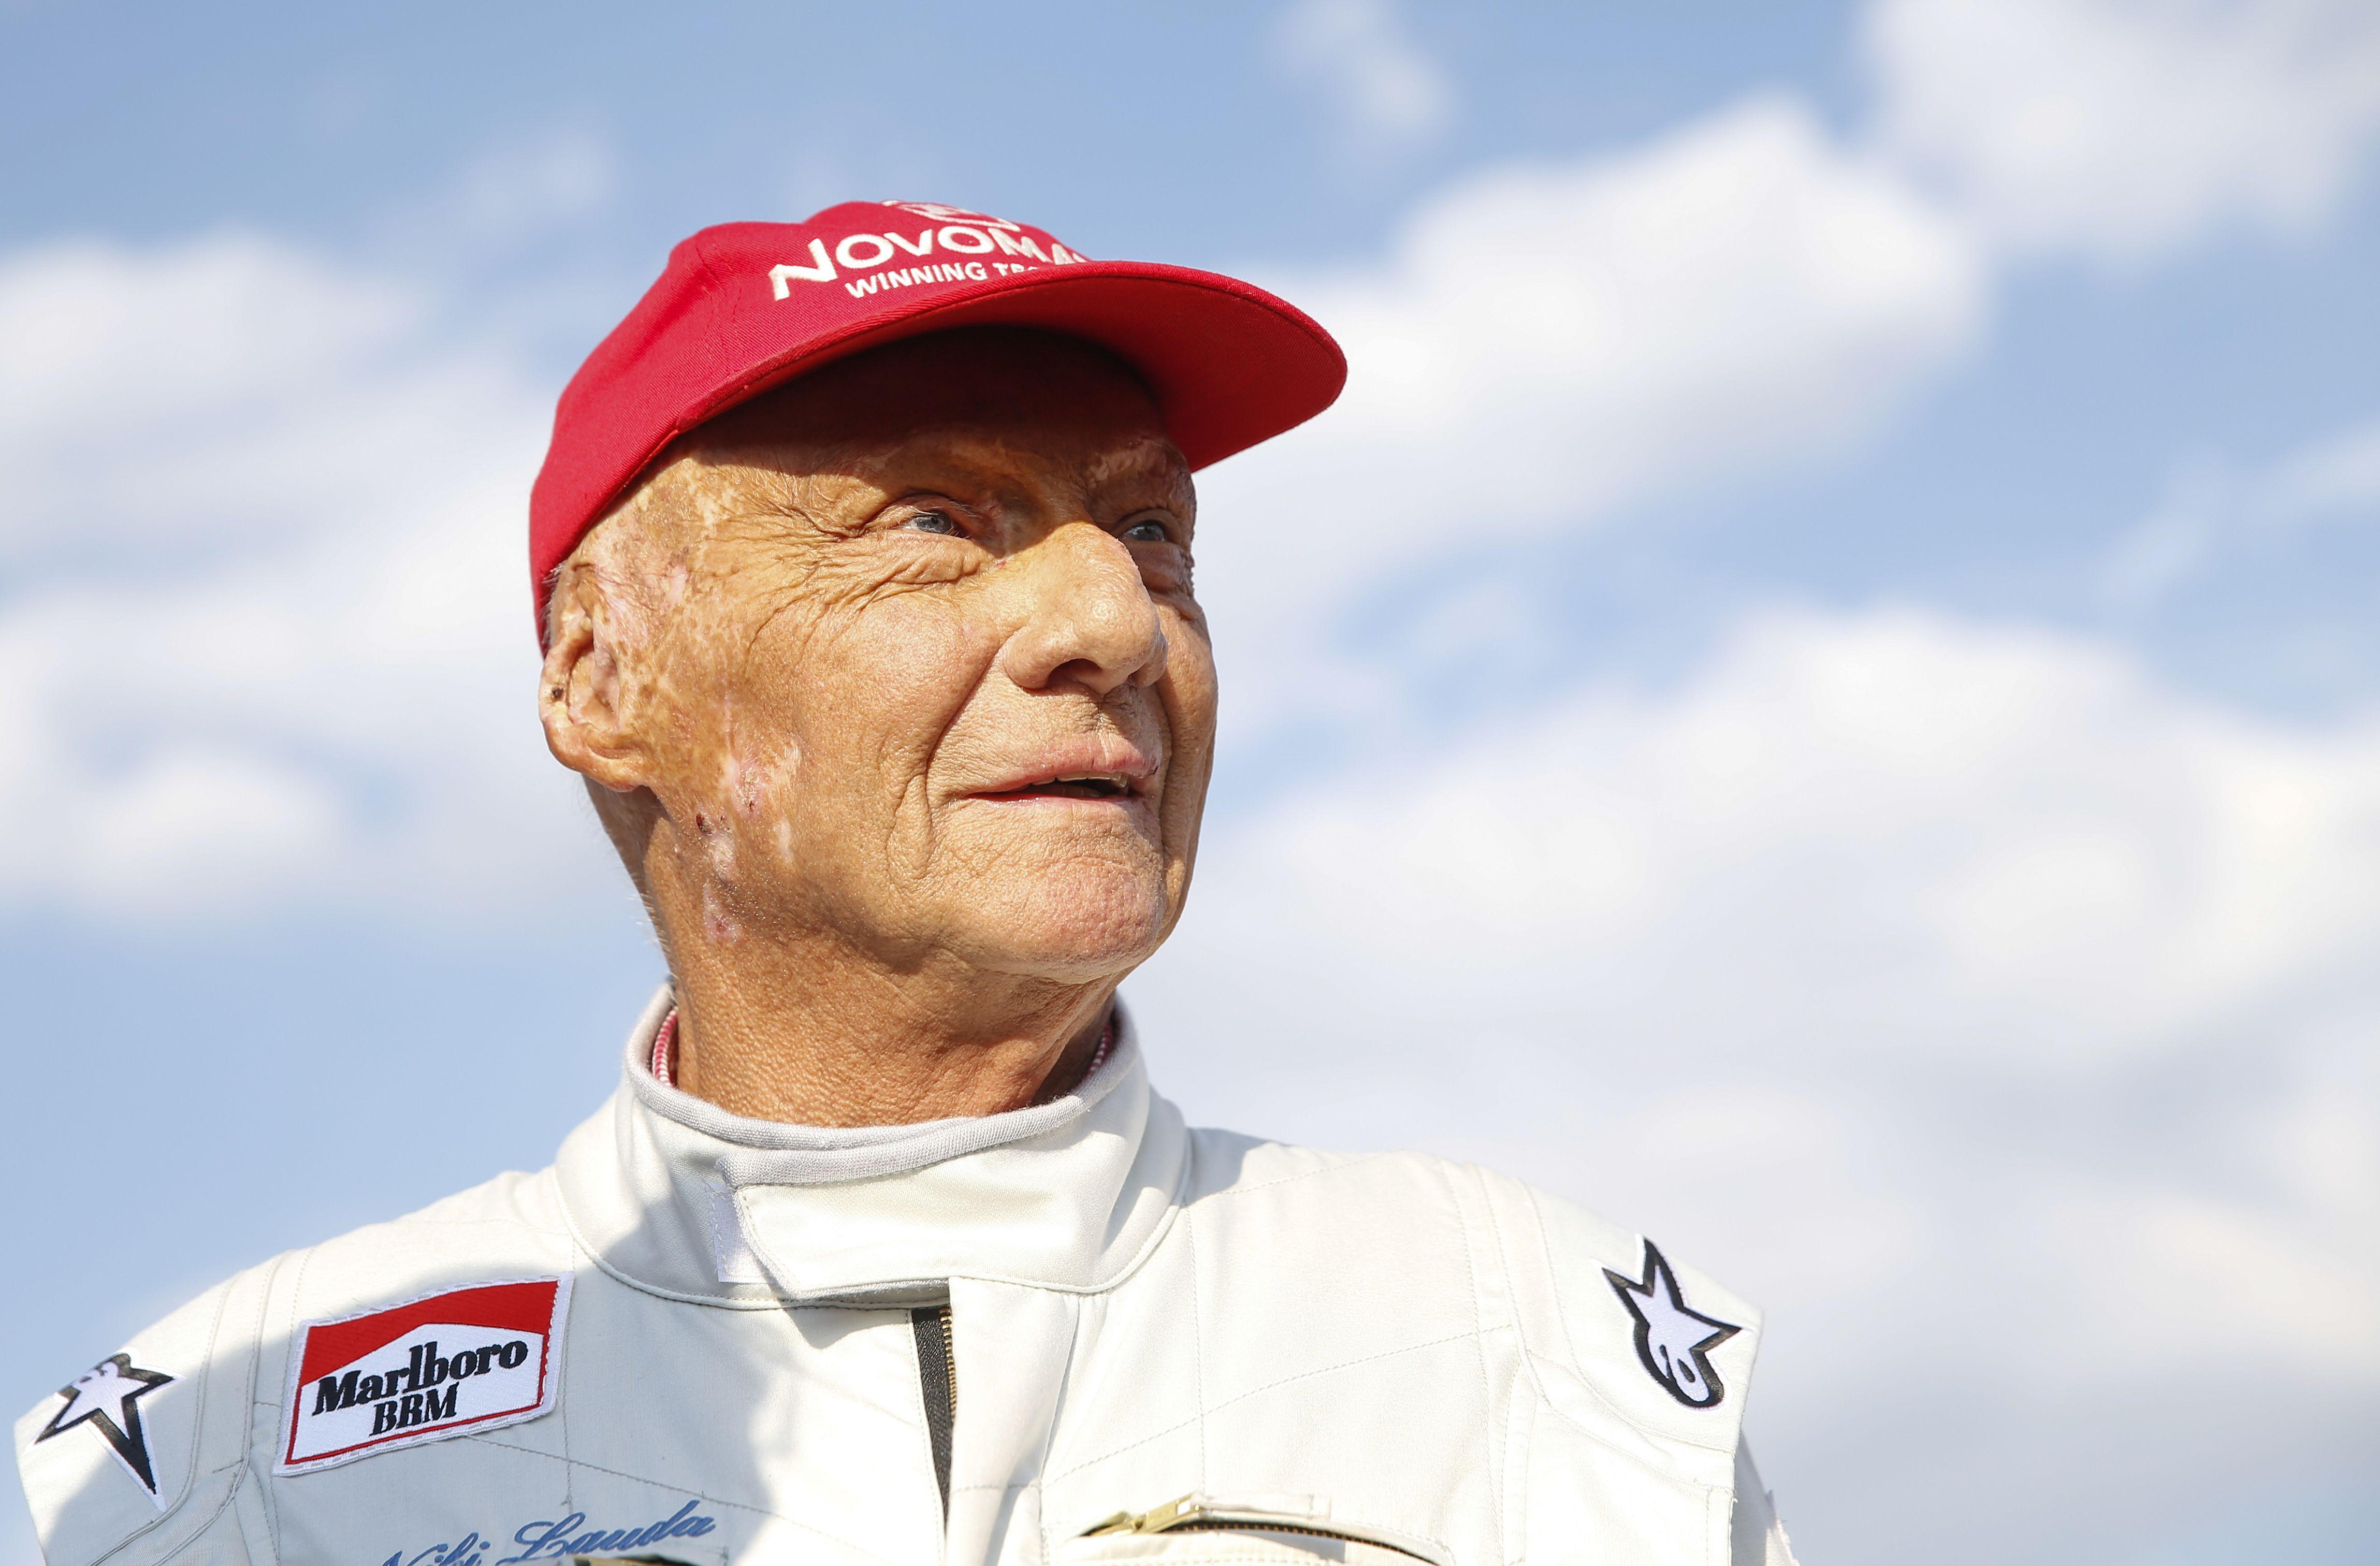 Edwards was one of the people who helped save Niki Lauda